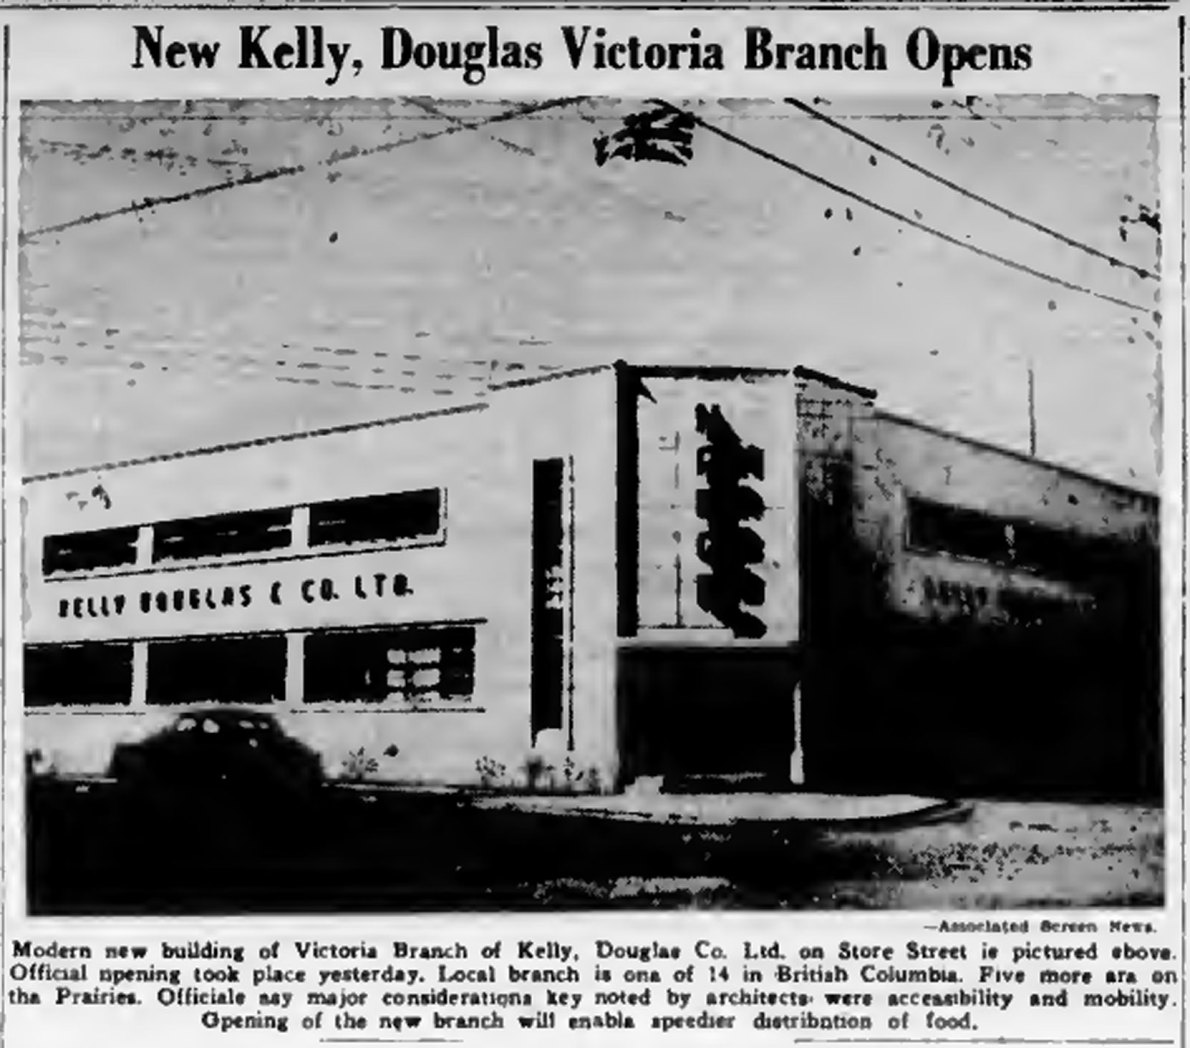 1947 newspaper photo of the then newly opened Kelly Douglas & Co. Ltd. office and warehouse at 1810 Store Street.